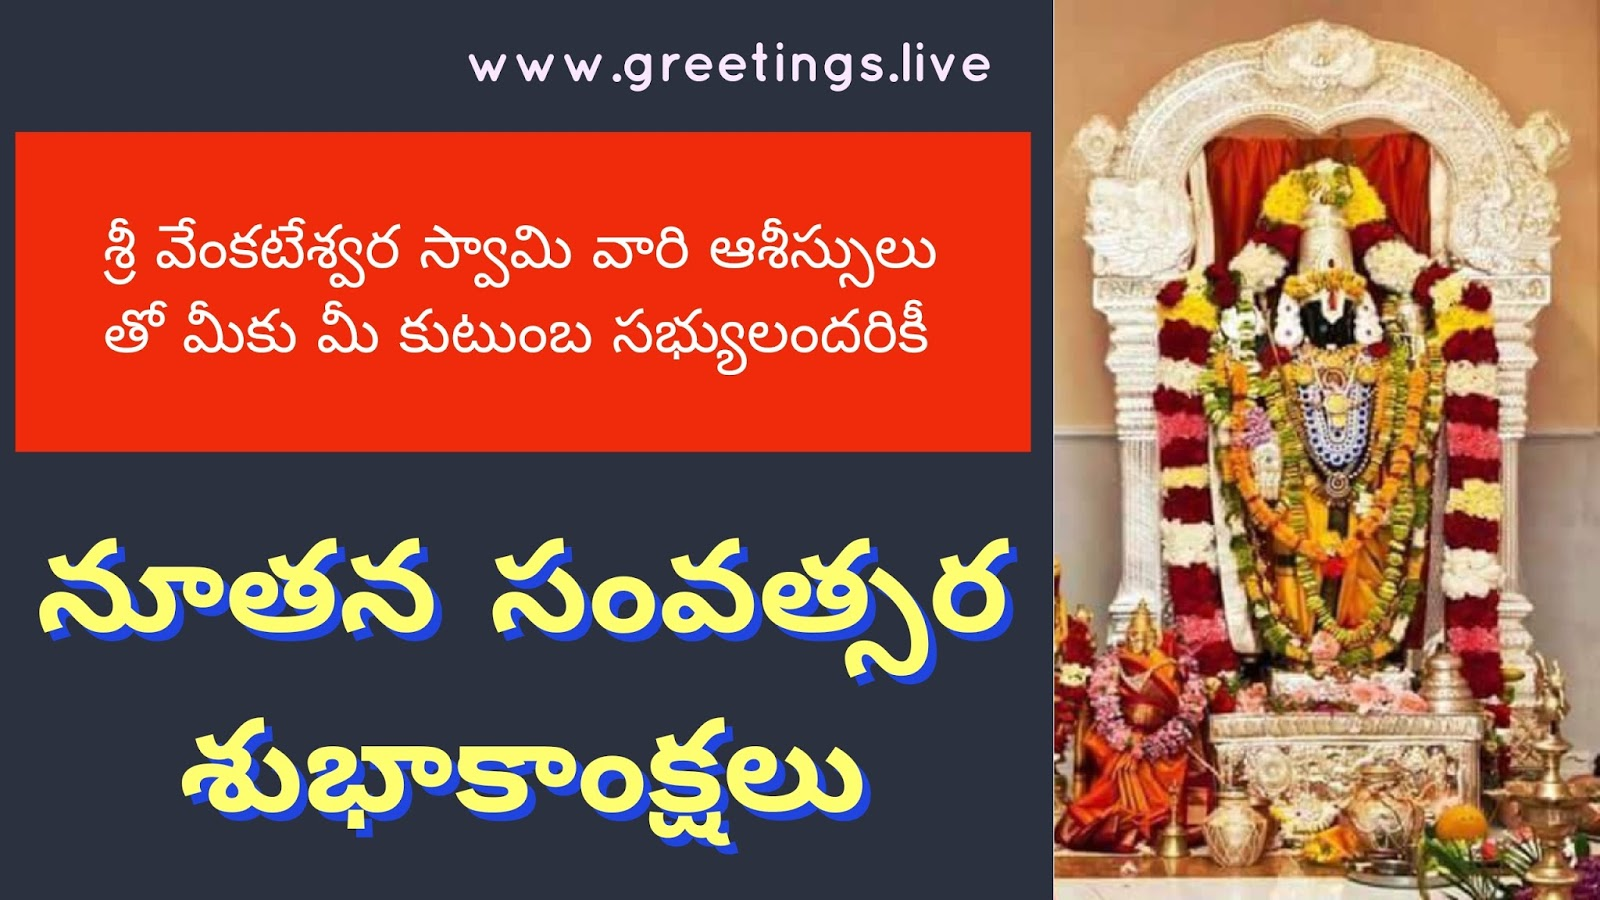 hindu devotional greetings collection of lord sri venkateswara greetings